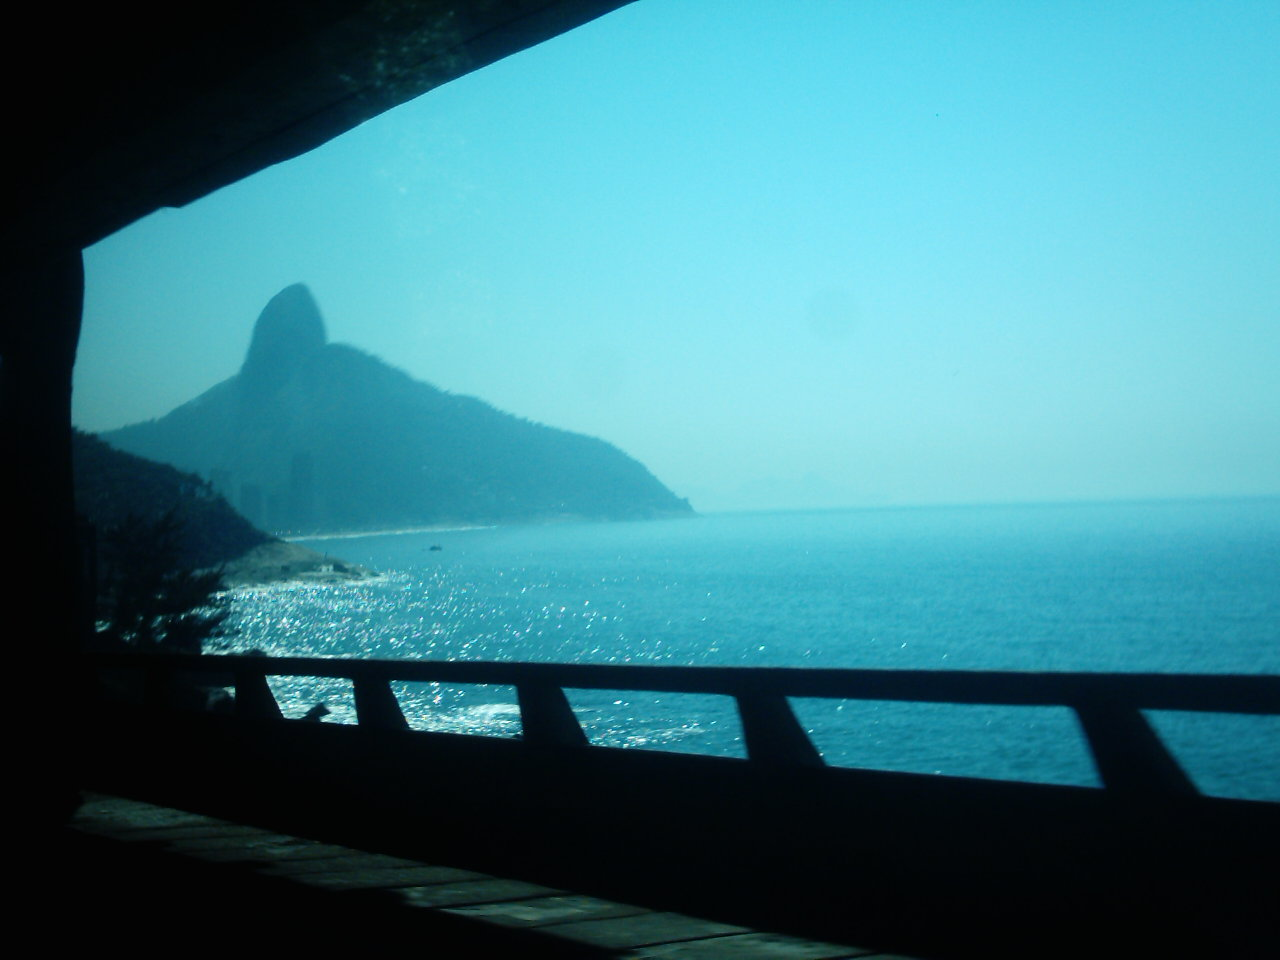 Between Copacabana and Barra de Tijuca